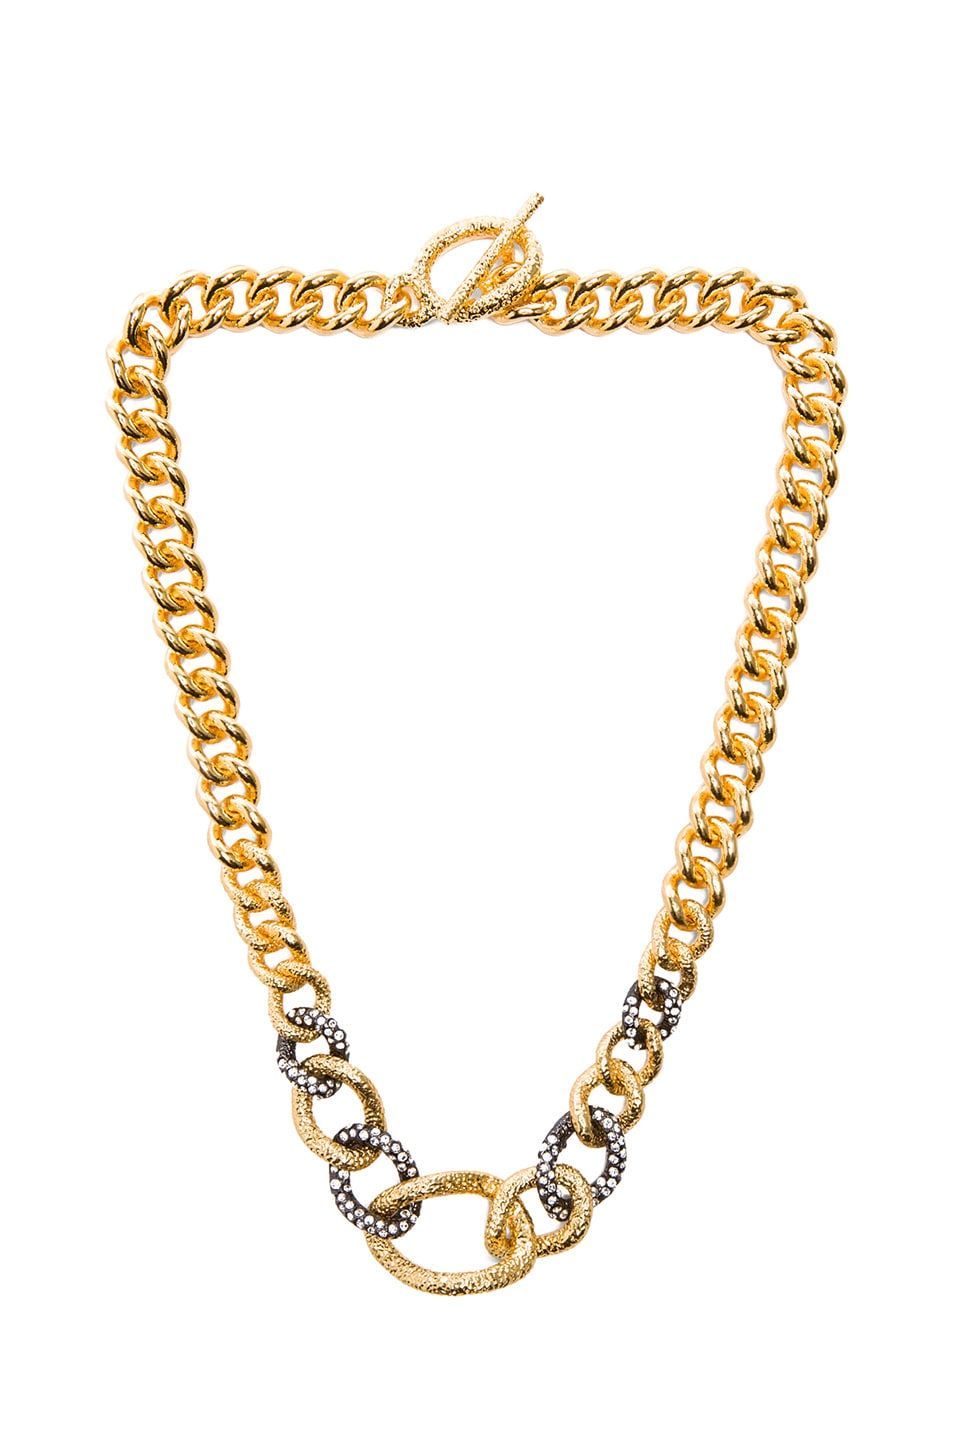 Image 1 of Alexis Bittar Chain Link Single Strand Necklace in Gold